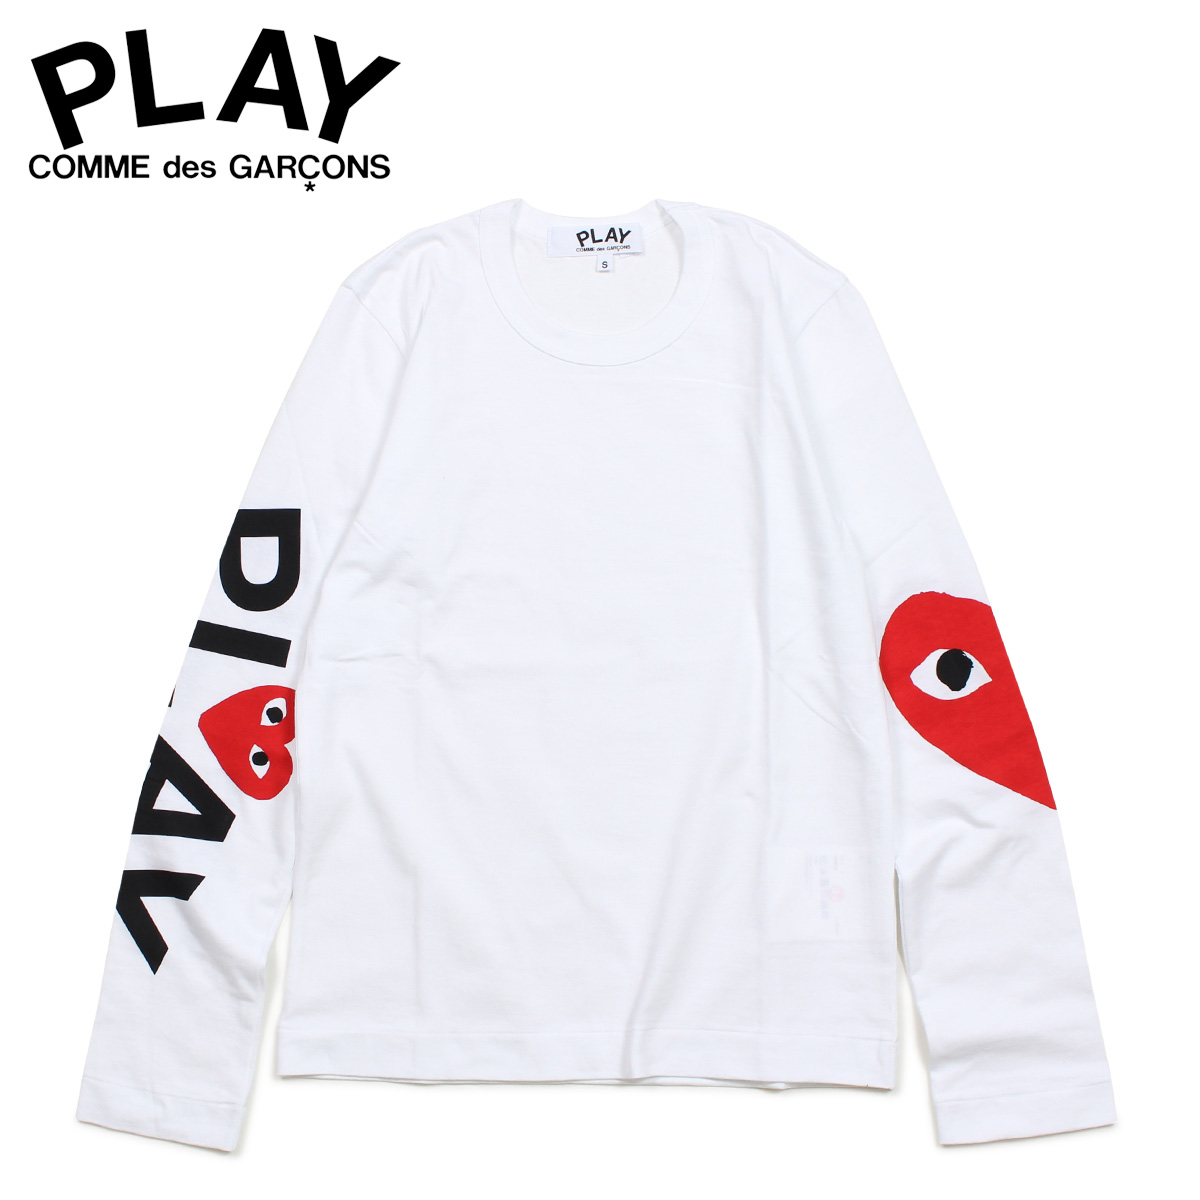 PLAY COMME des GARCONS コムデギャルソン Tシャツ レディース 長袖 ロンT RED HEART LONG SLEEVE ホワイト 白 AZ-T257 [3/29 新入荷]